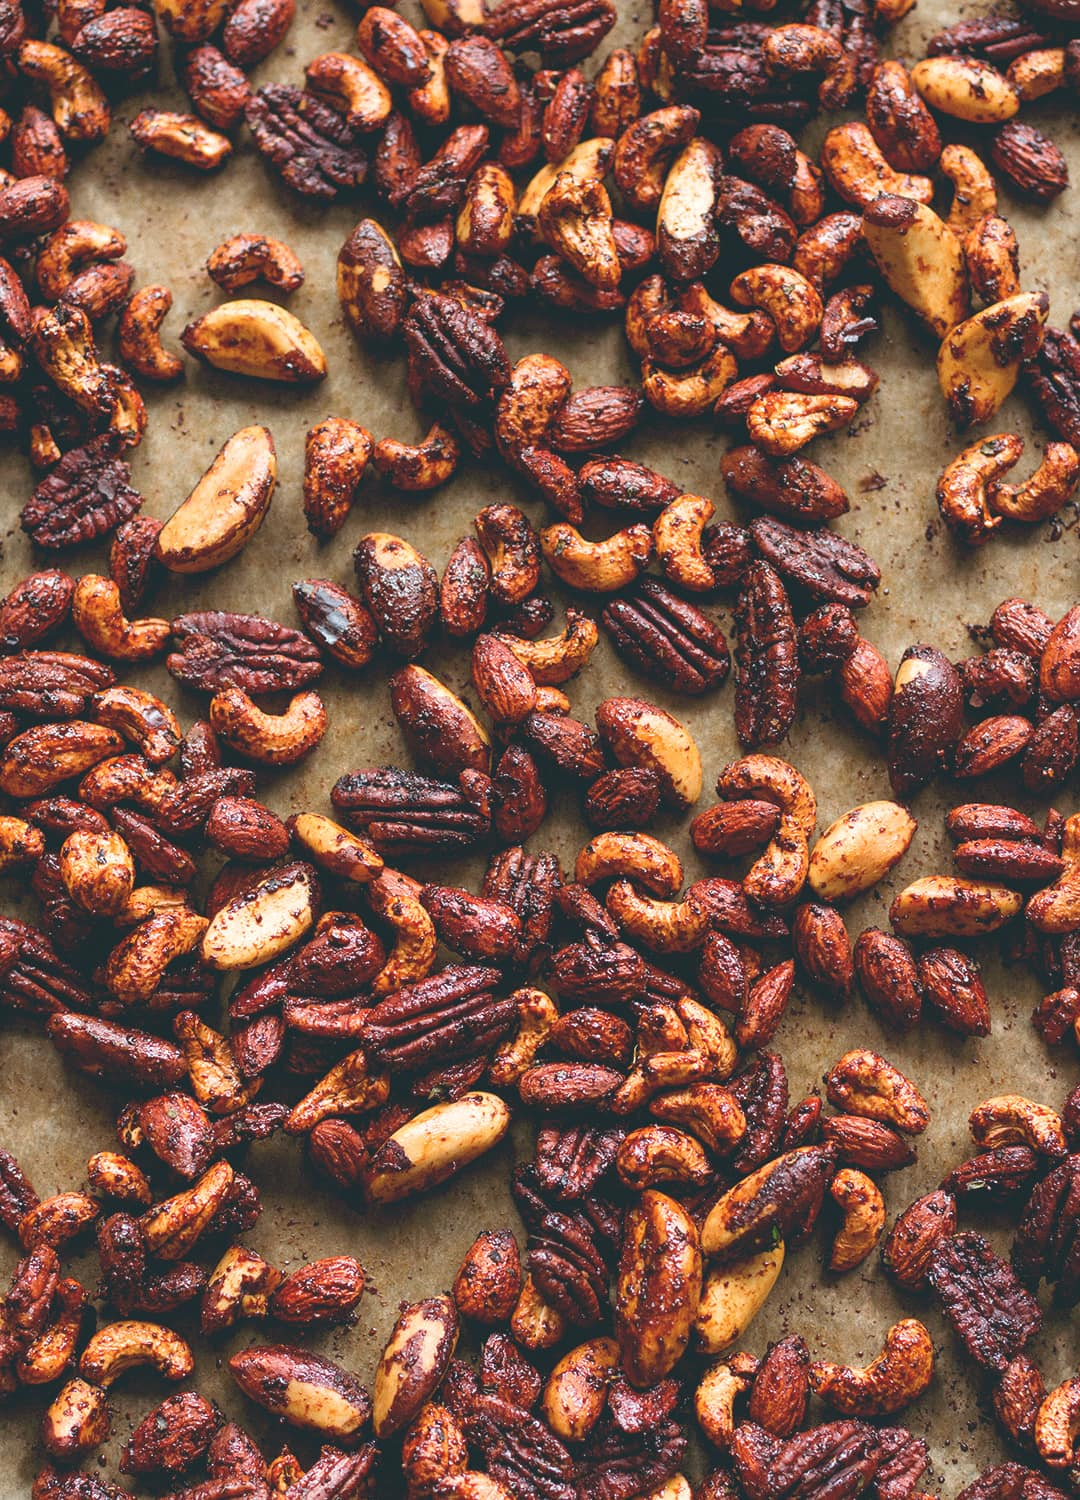 Chipotle Roasted Nuts - maple syrup, coconut oil, and spices. These are incredible! Vegan and gluten-free. | thehealthfulideas.com